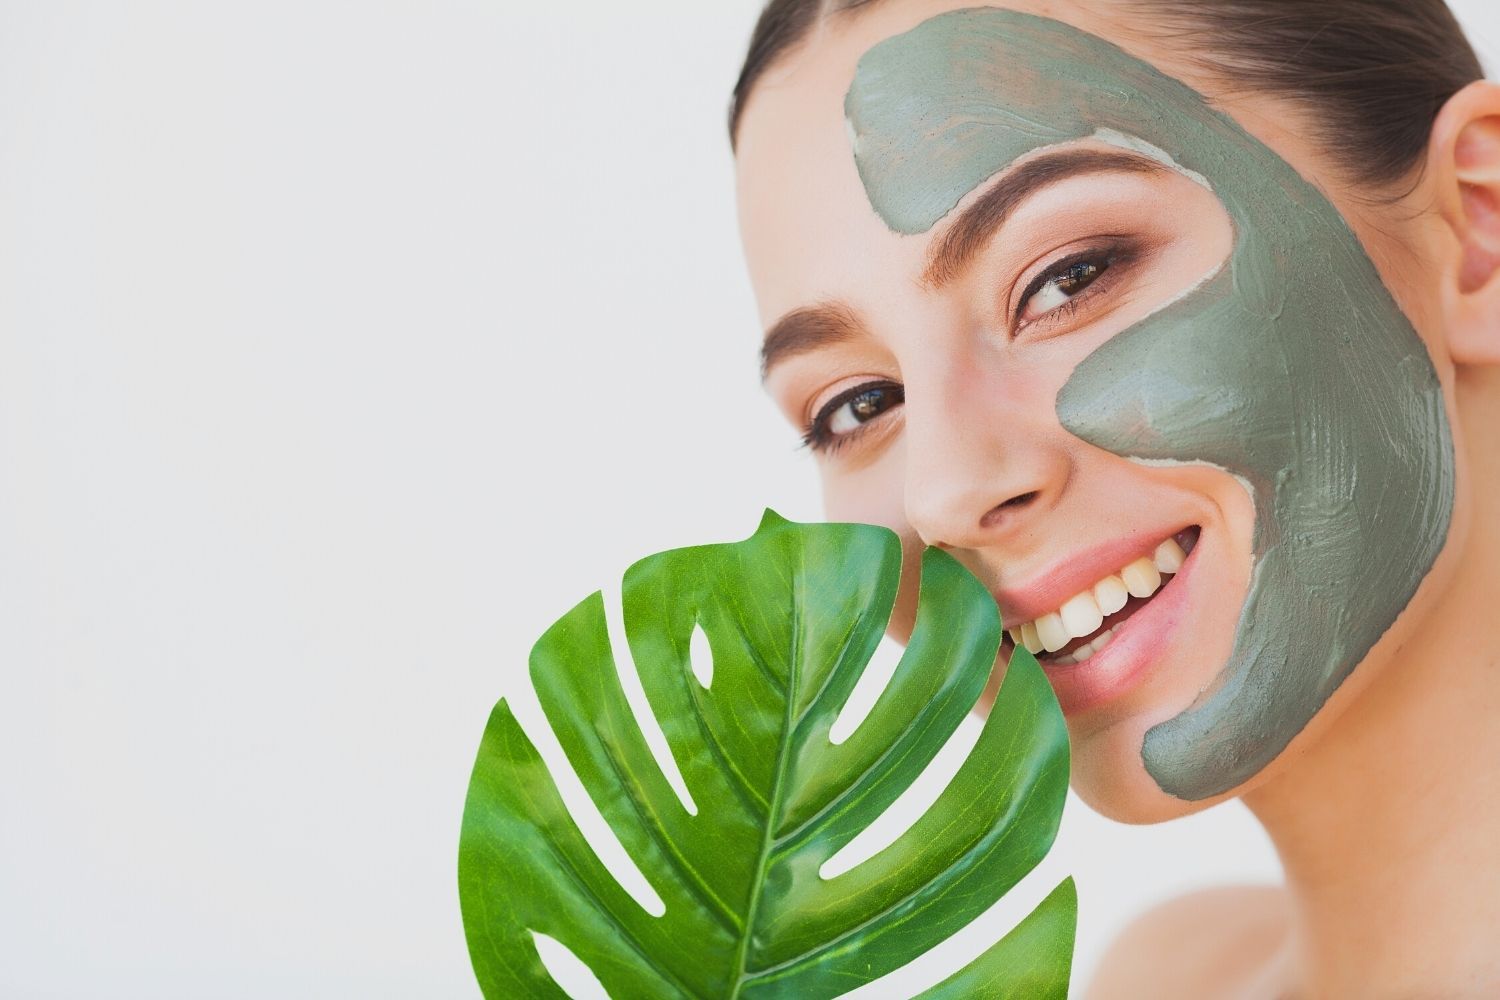 4 DIY Face Mask Recipes to Hydrate Skin